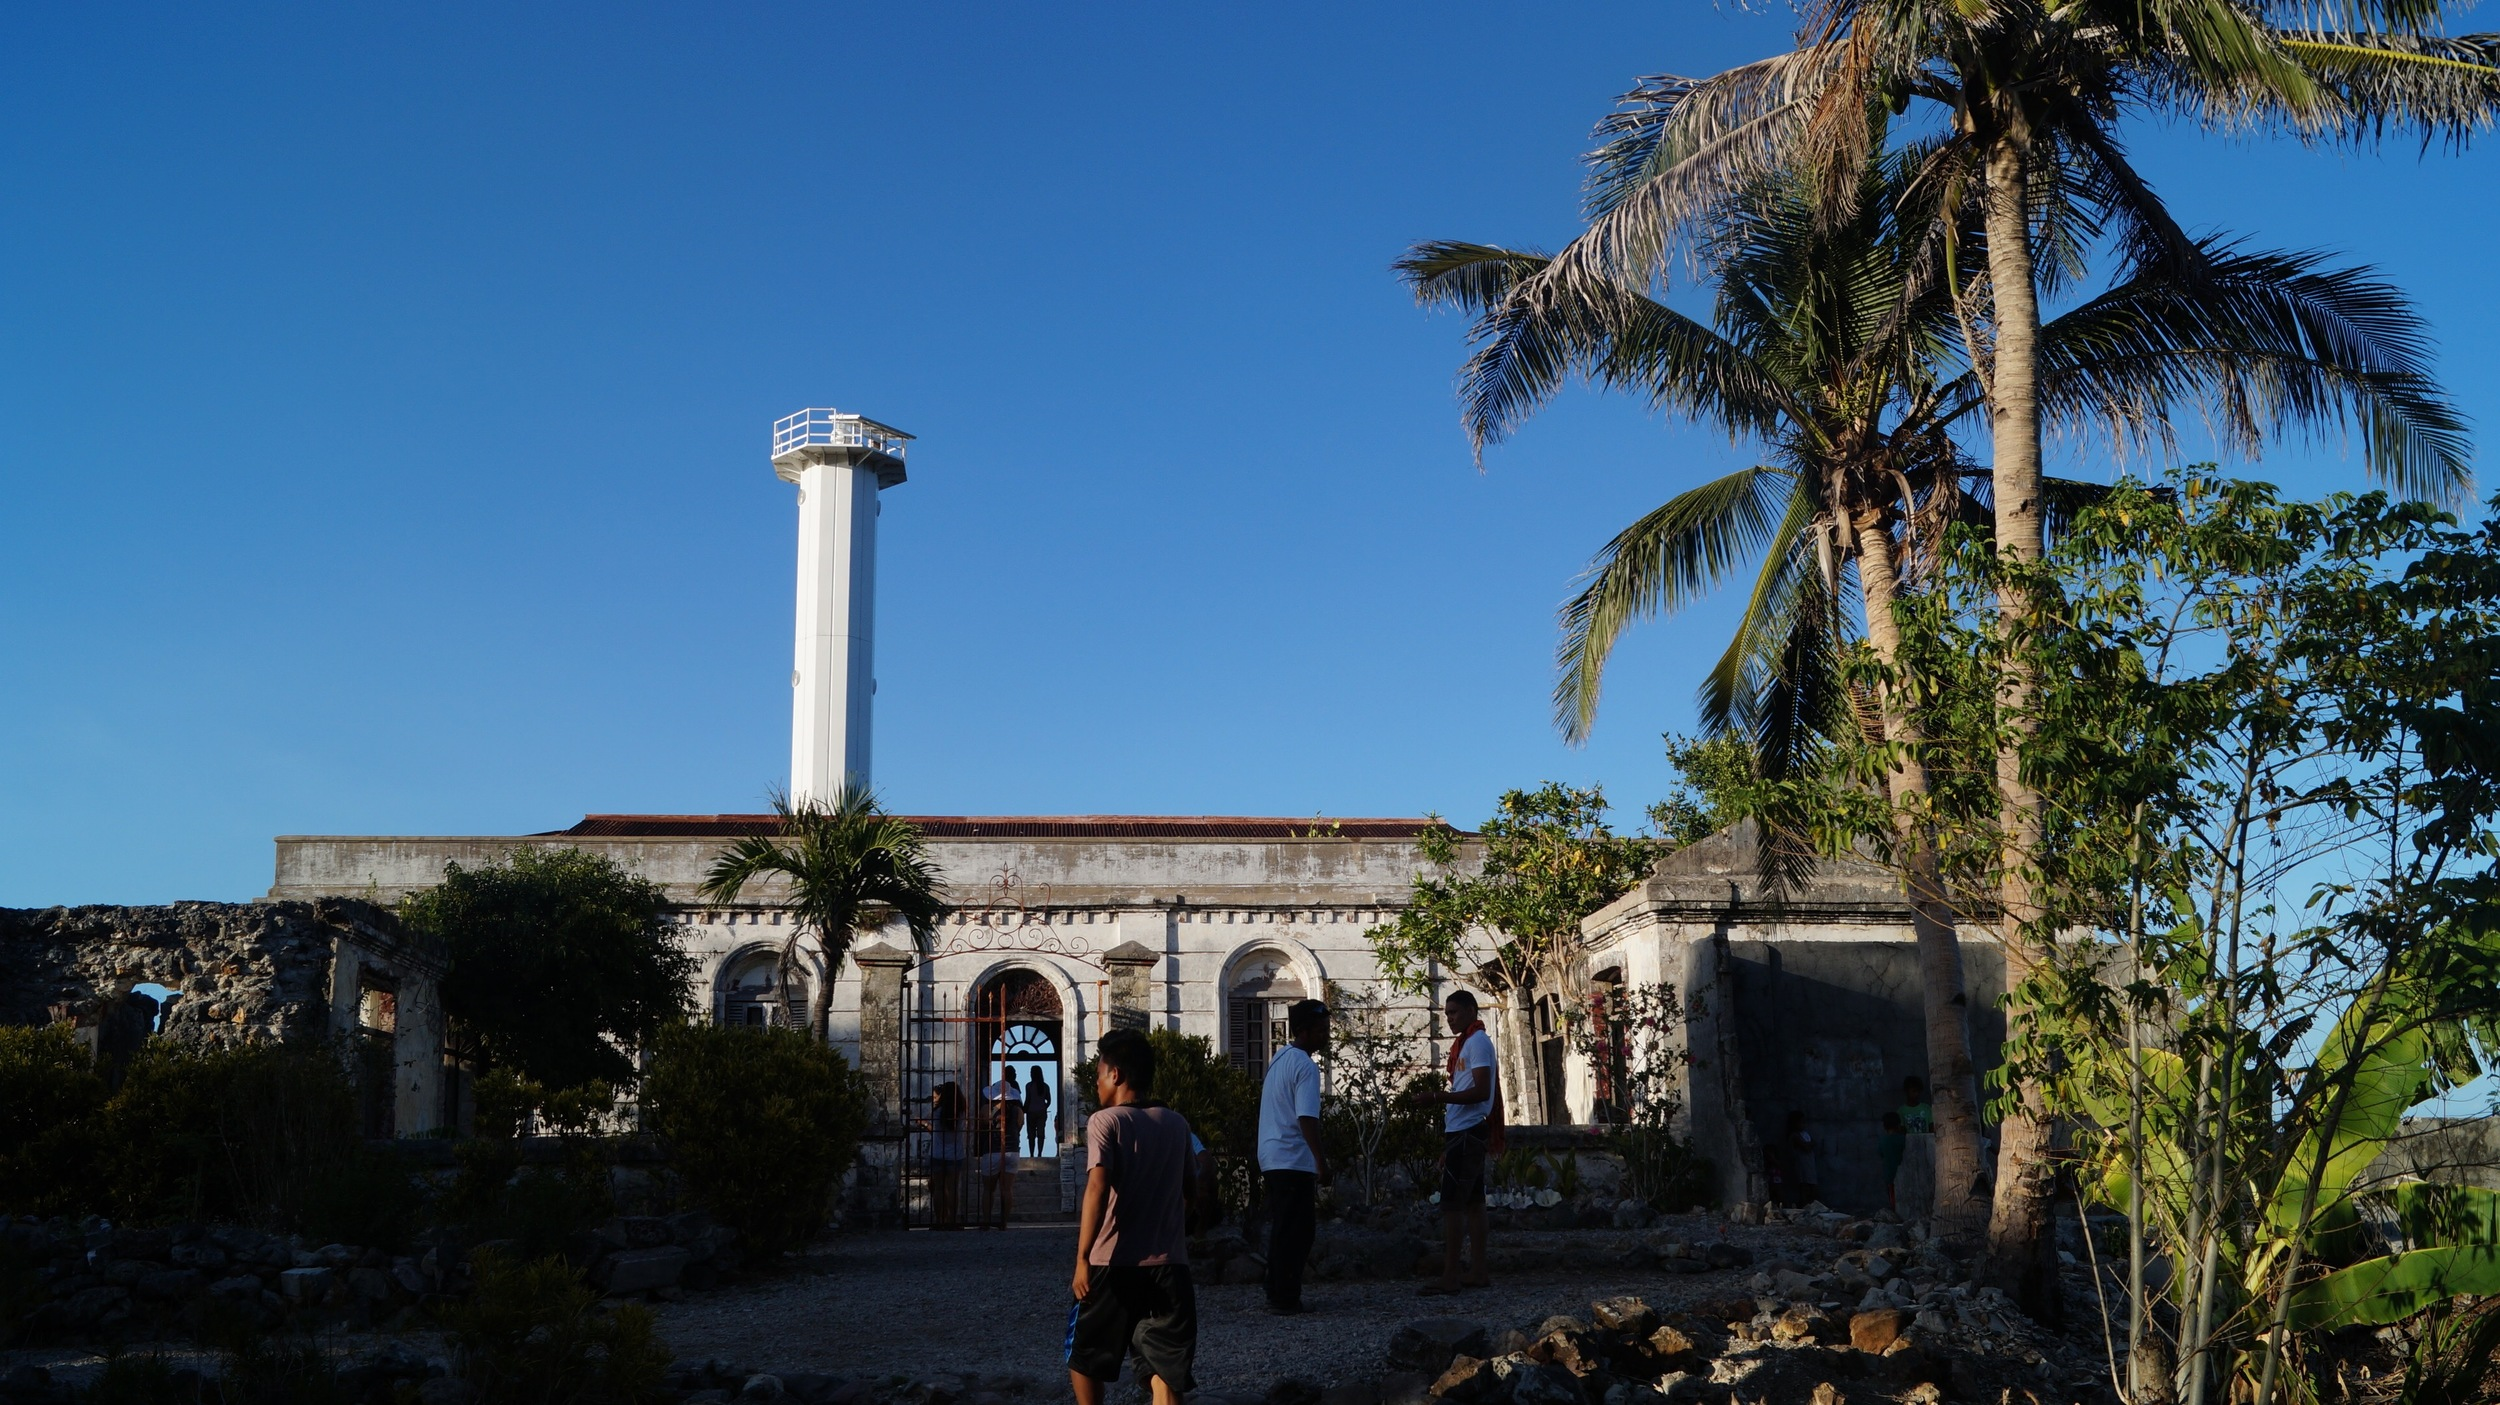 Philippines, Islas De Gigantes - Gigantes Norte Lighthouse - illumelation